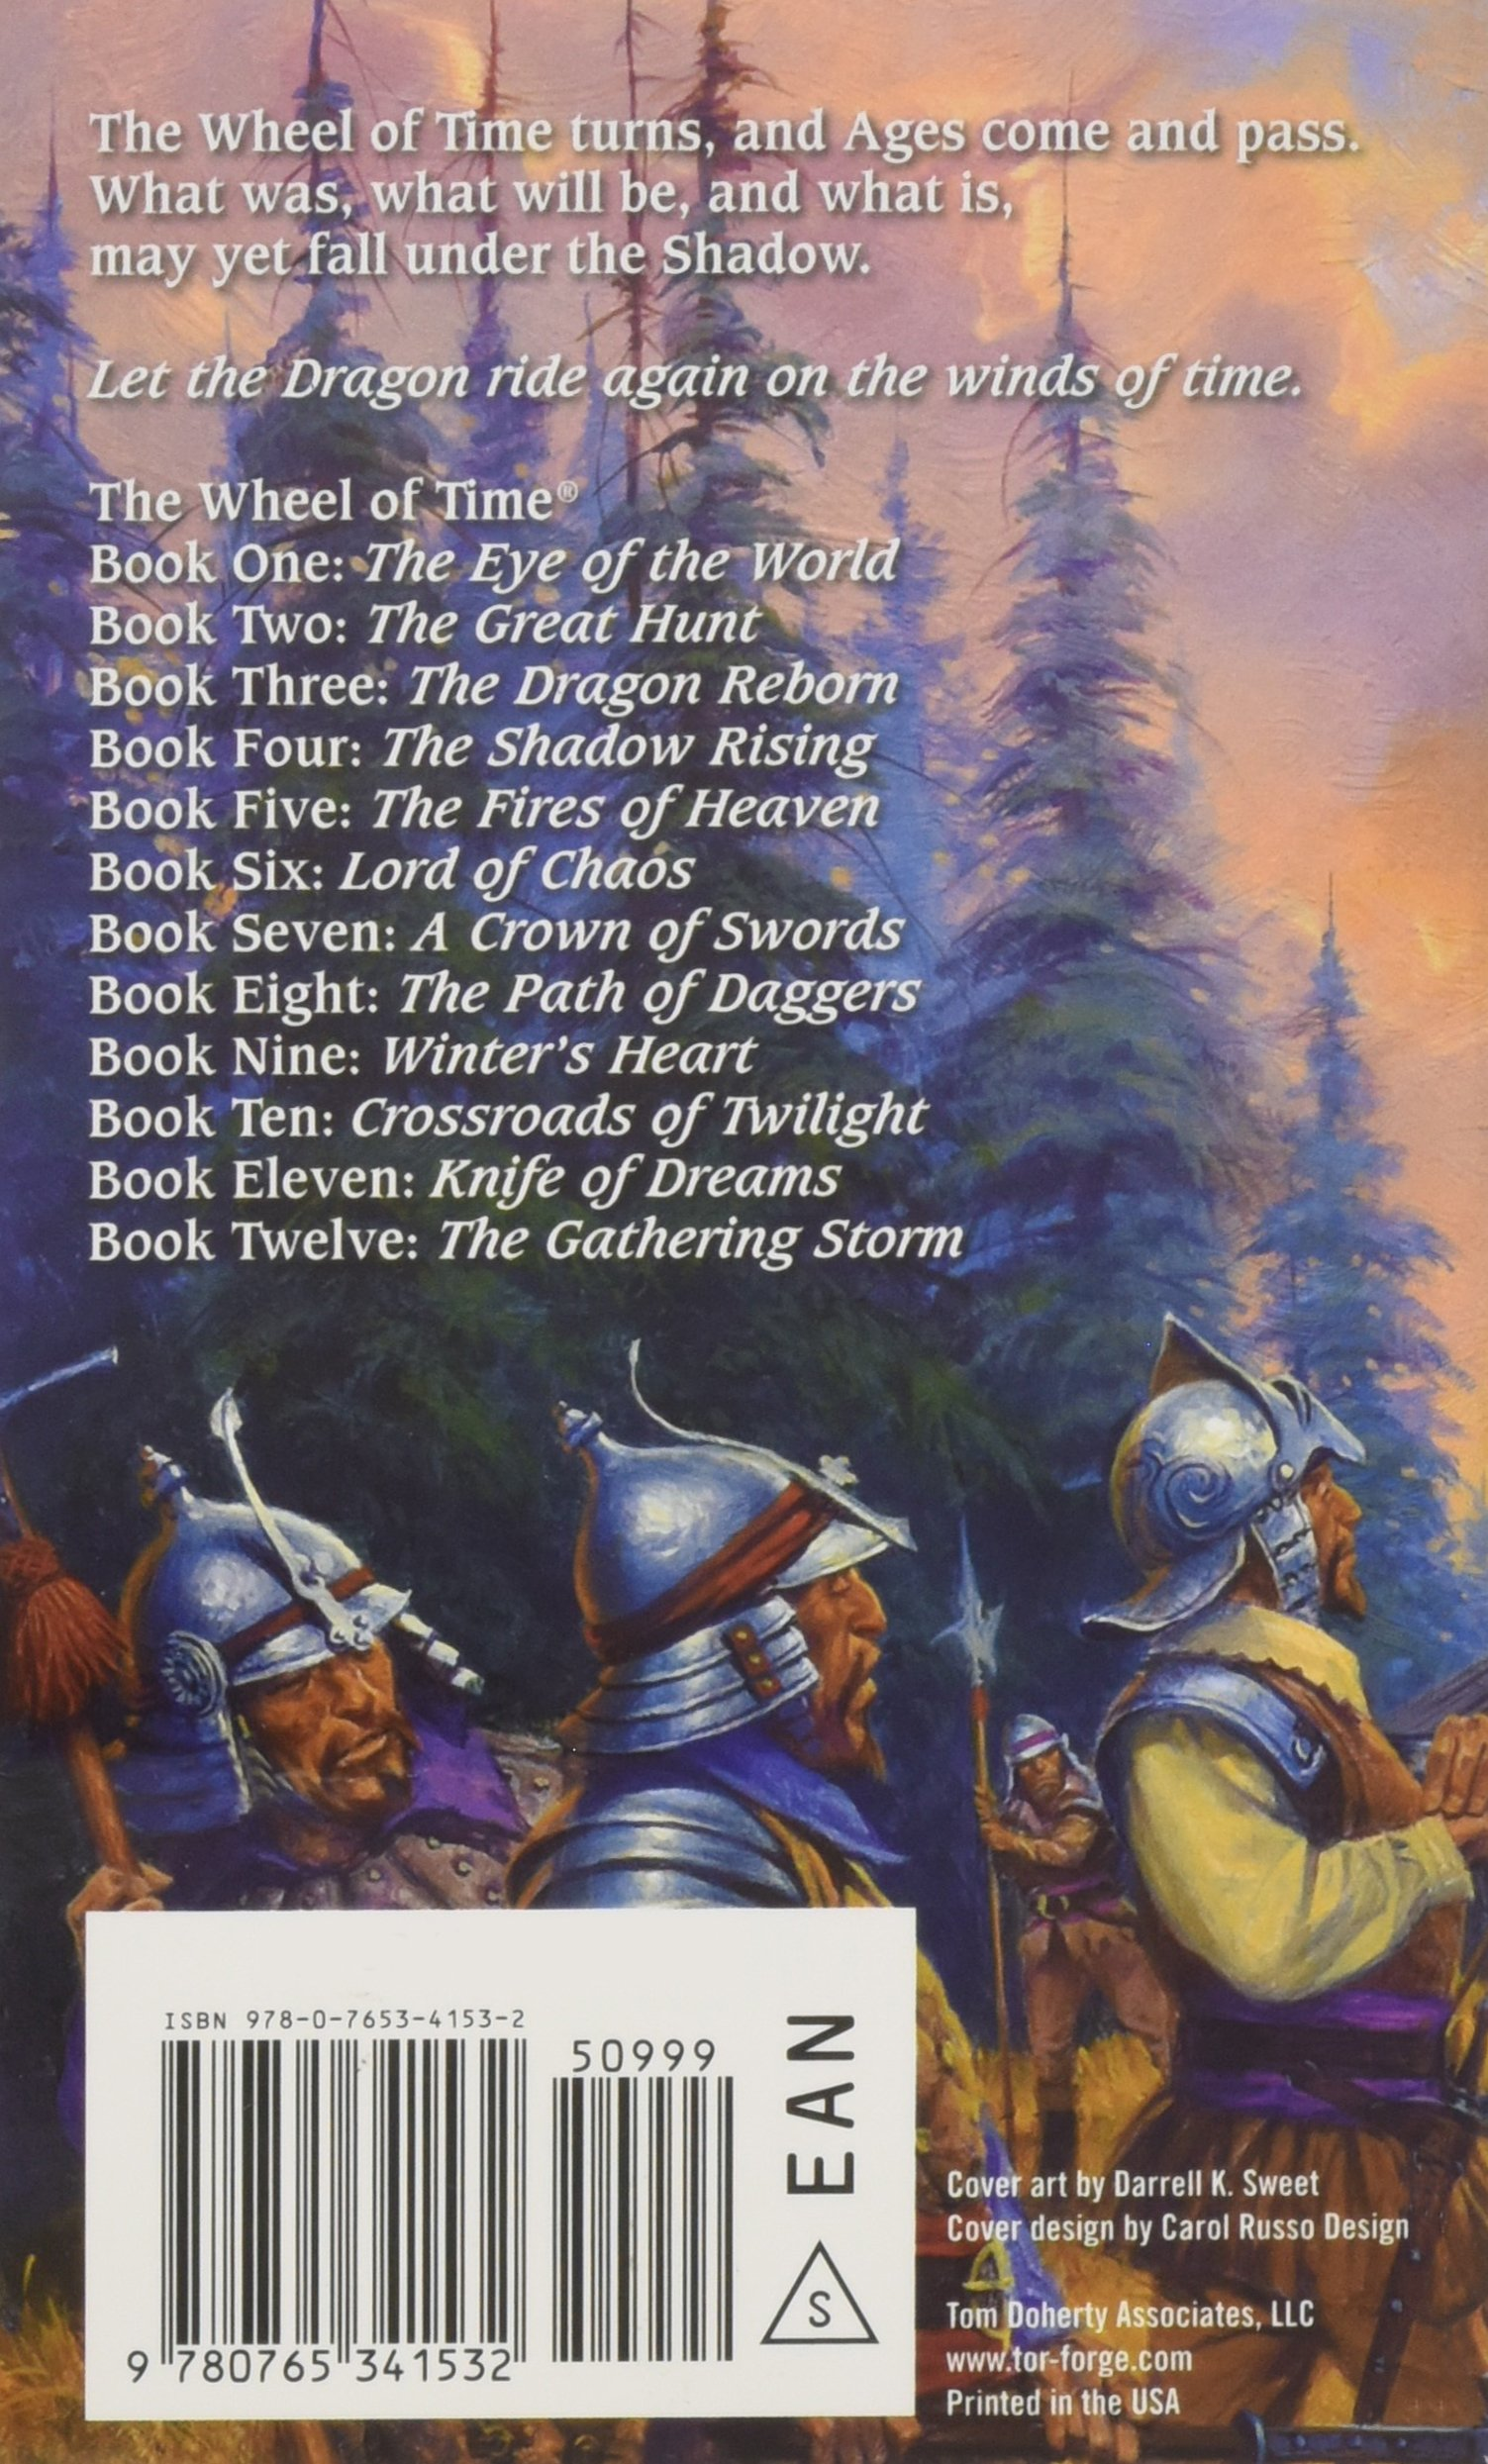 The Gathering Storm: Book Twelve Of The Wheel Of Time: Robert Jordan,  Brandon Sanderson: 9780765341532: Amazon: Books